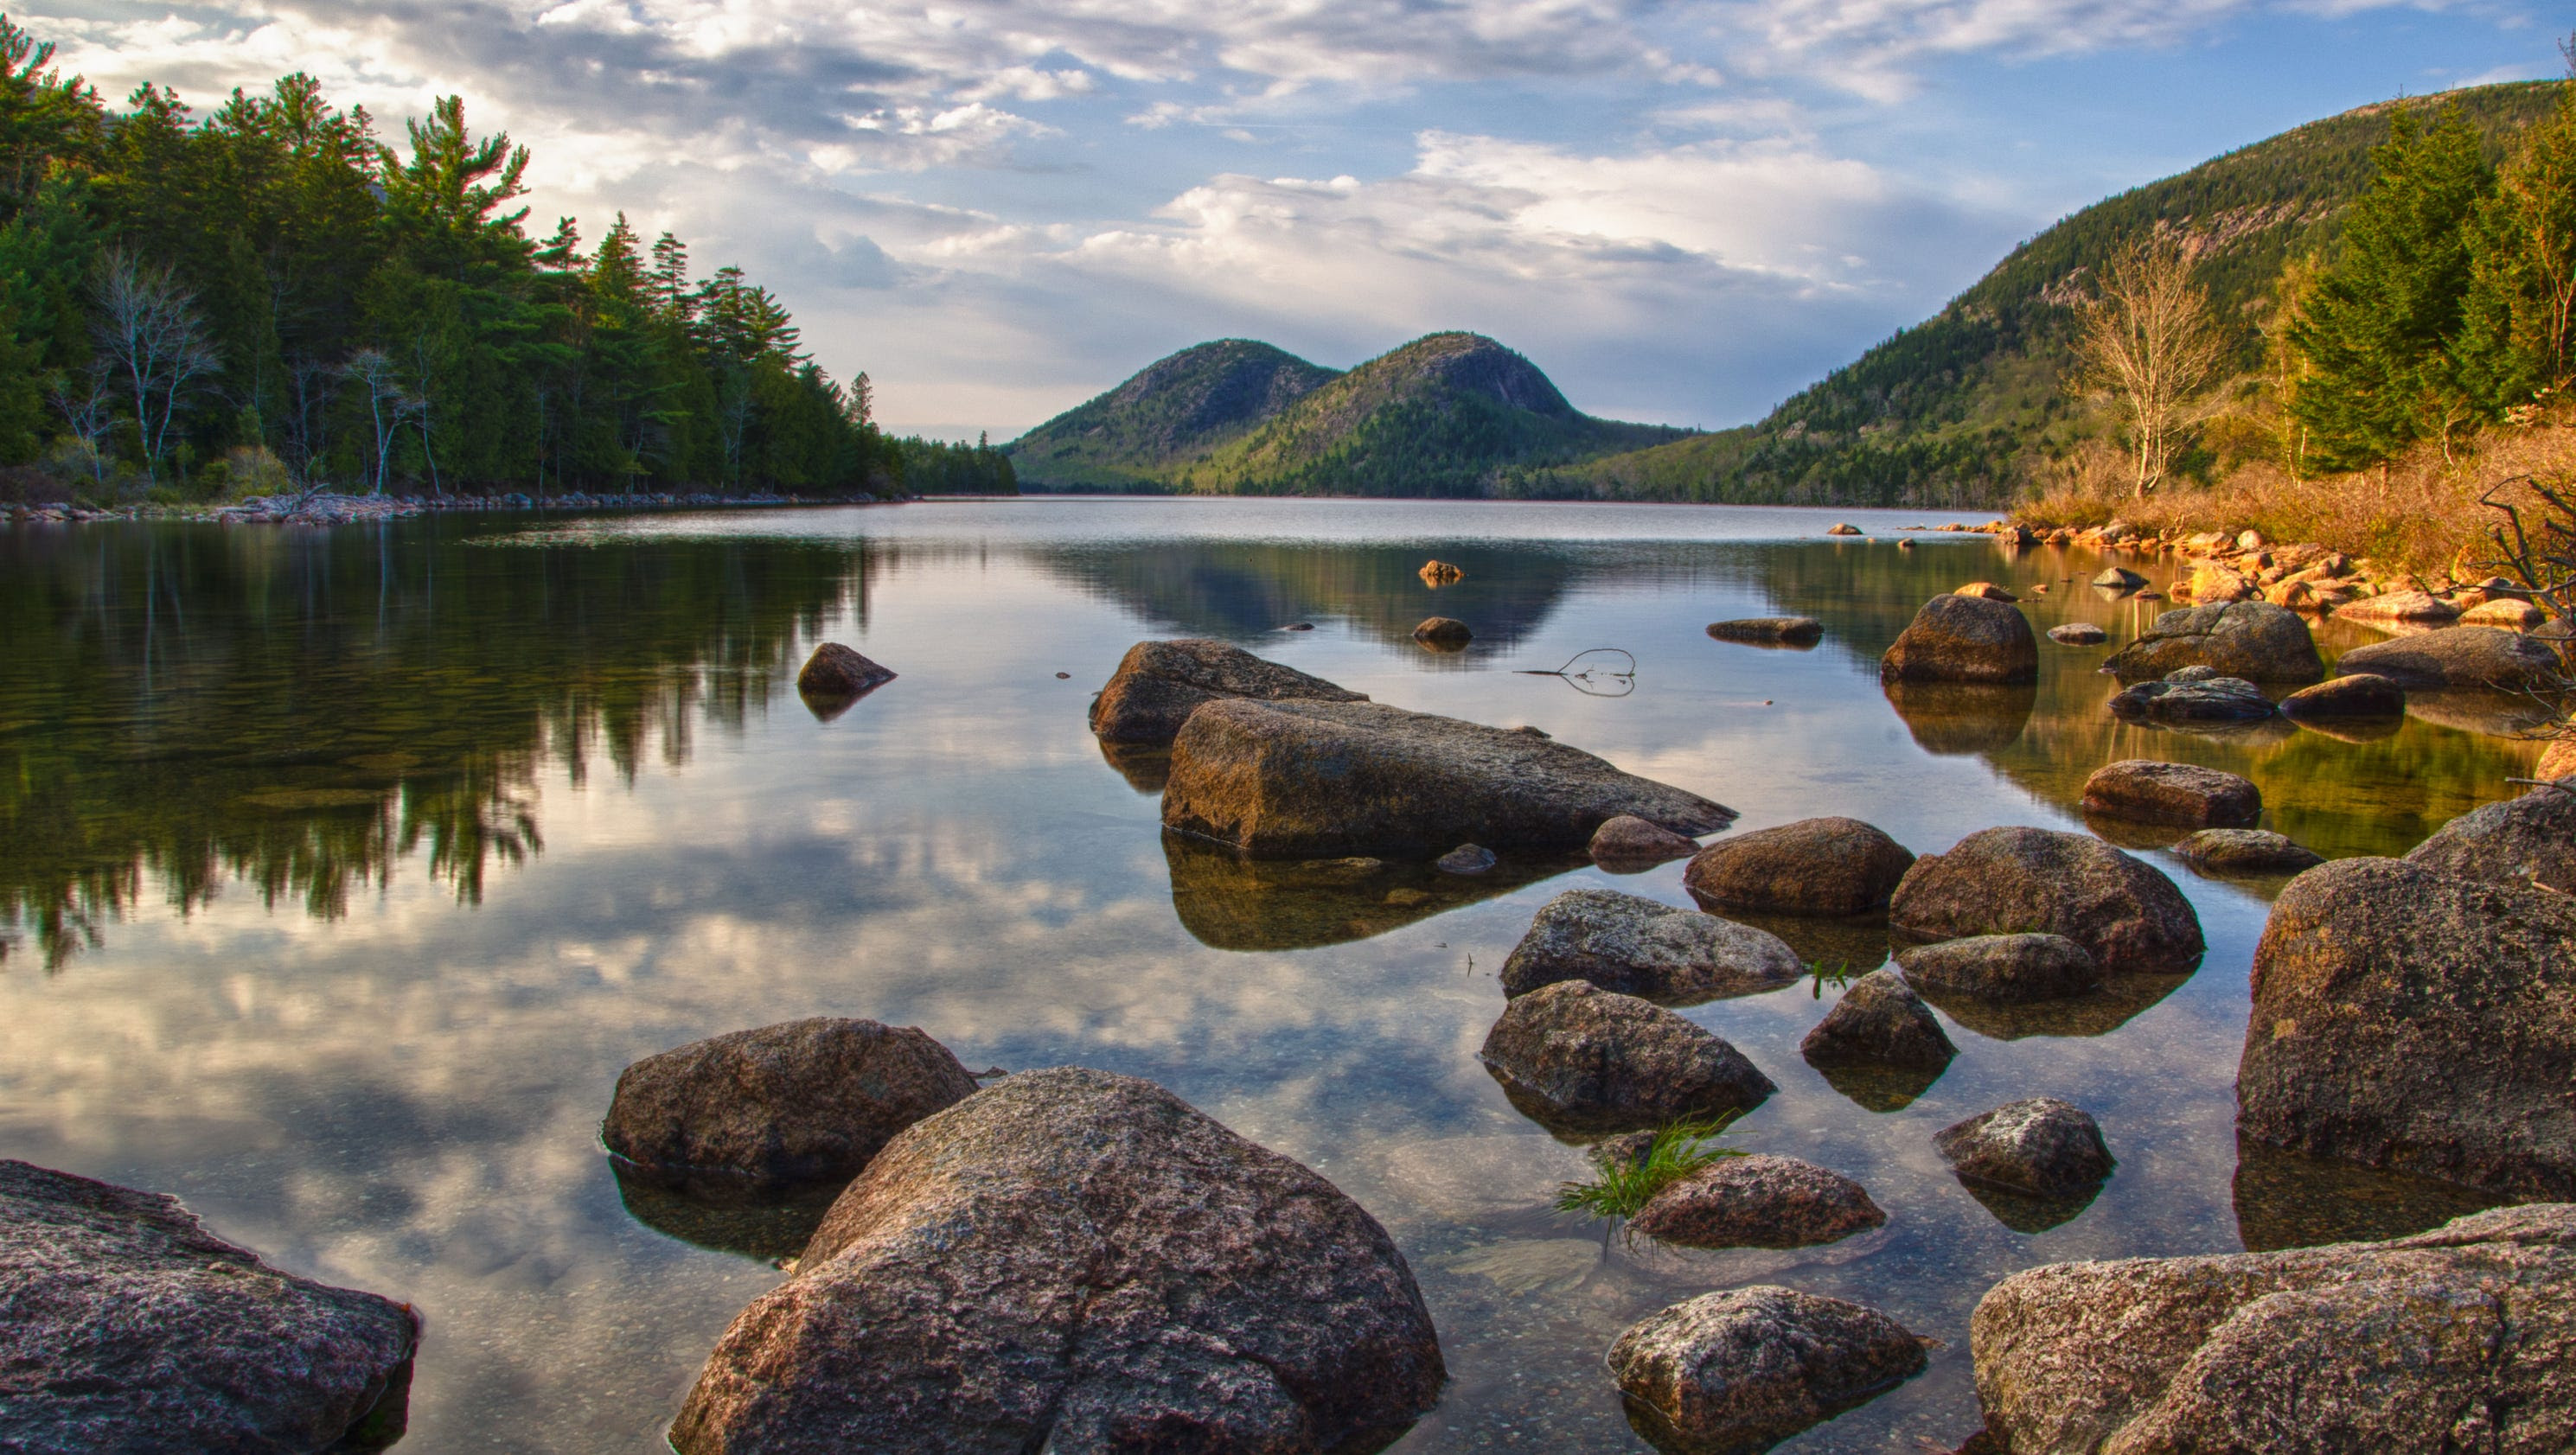 Acadia National Park: Maine's natural beauty on display